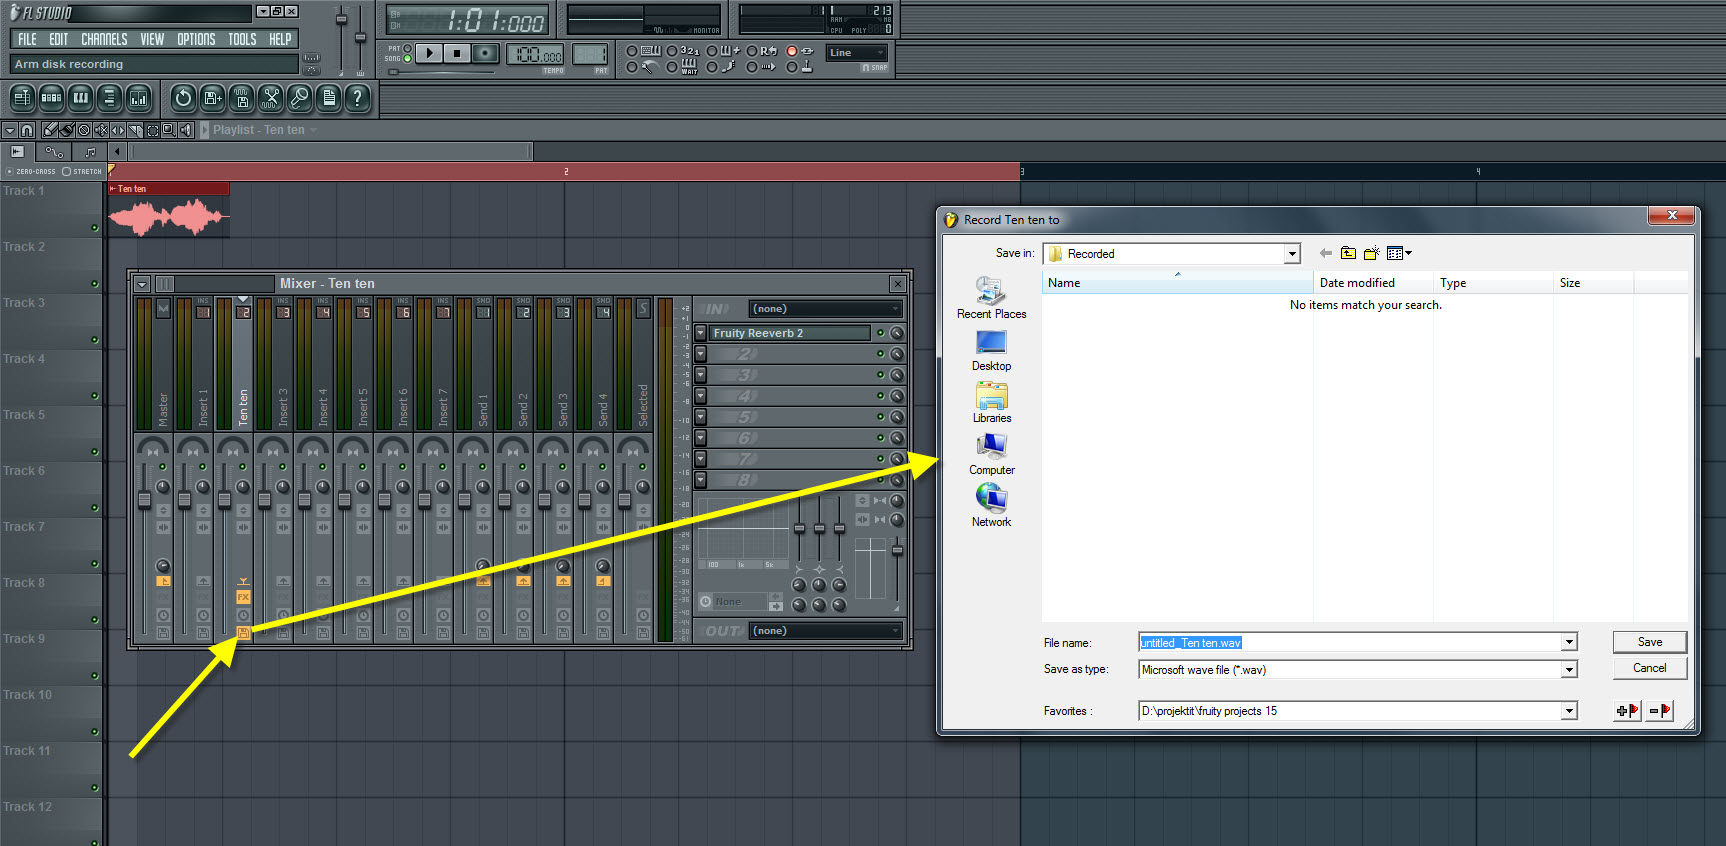 Arm The Mixer Track For Recording